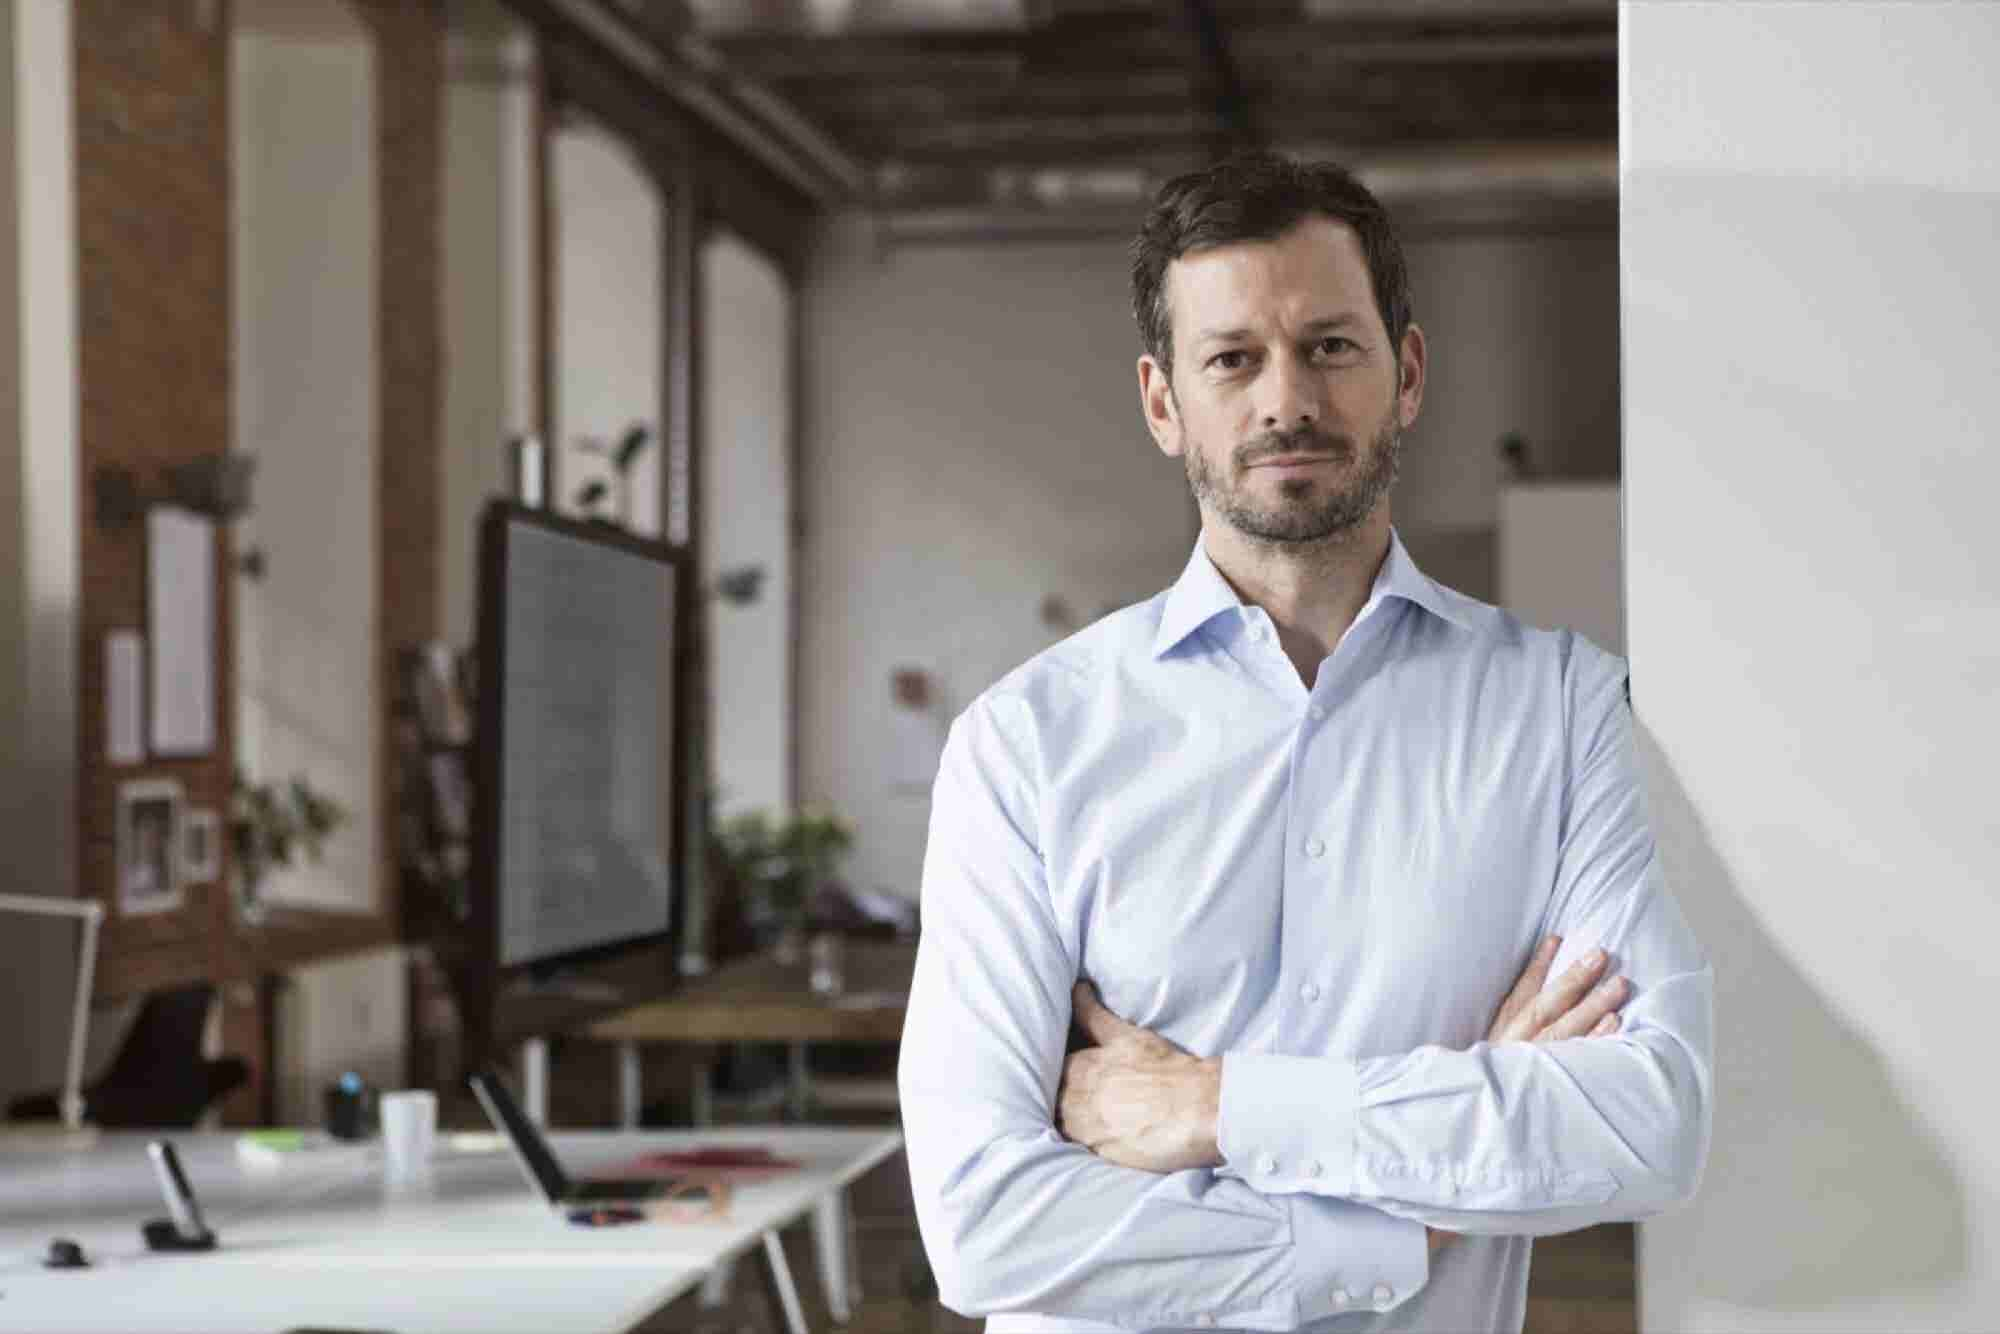 Statistically, What Does the Average Entrepreneur Look Like?